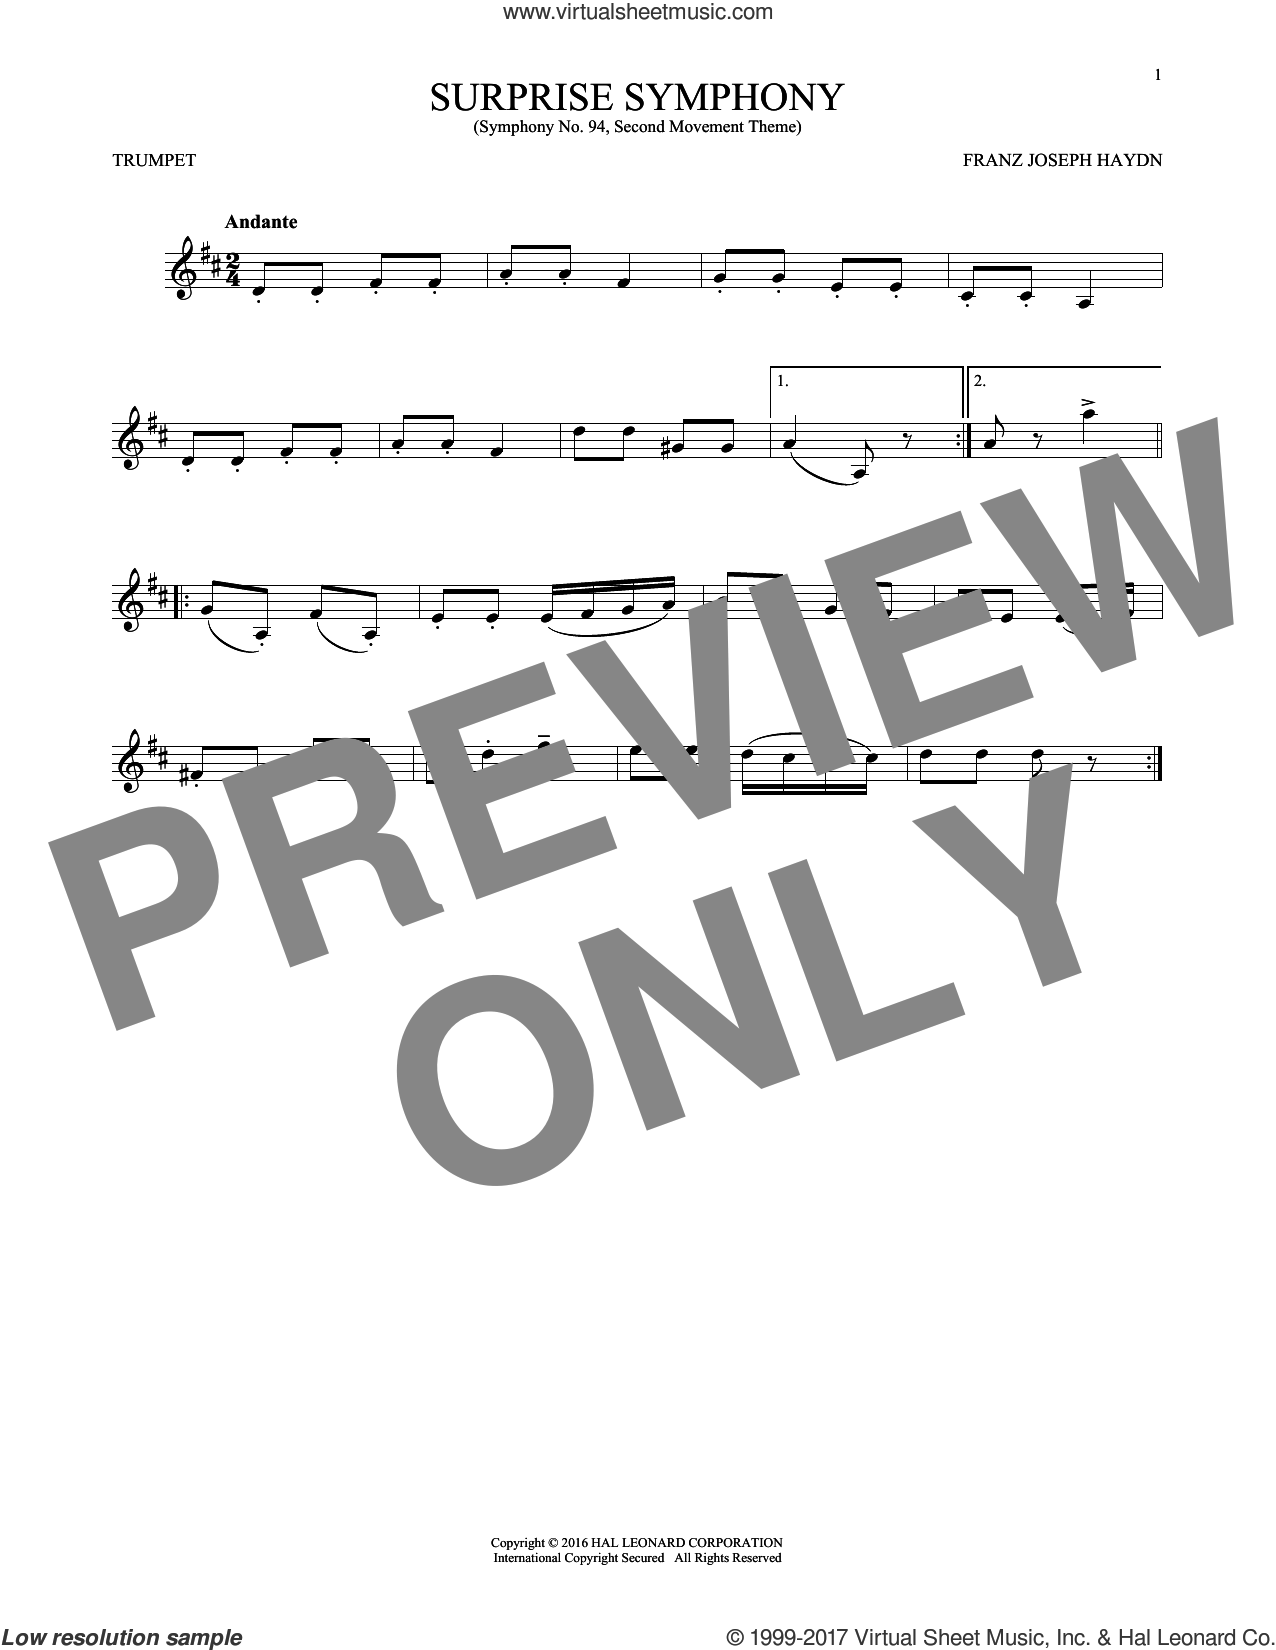 The Surprise Symphony sheet music for trumpet solo by Franz Joseph Haydn, classical score, intermediate skill level